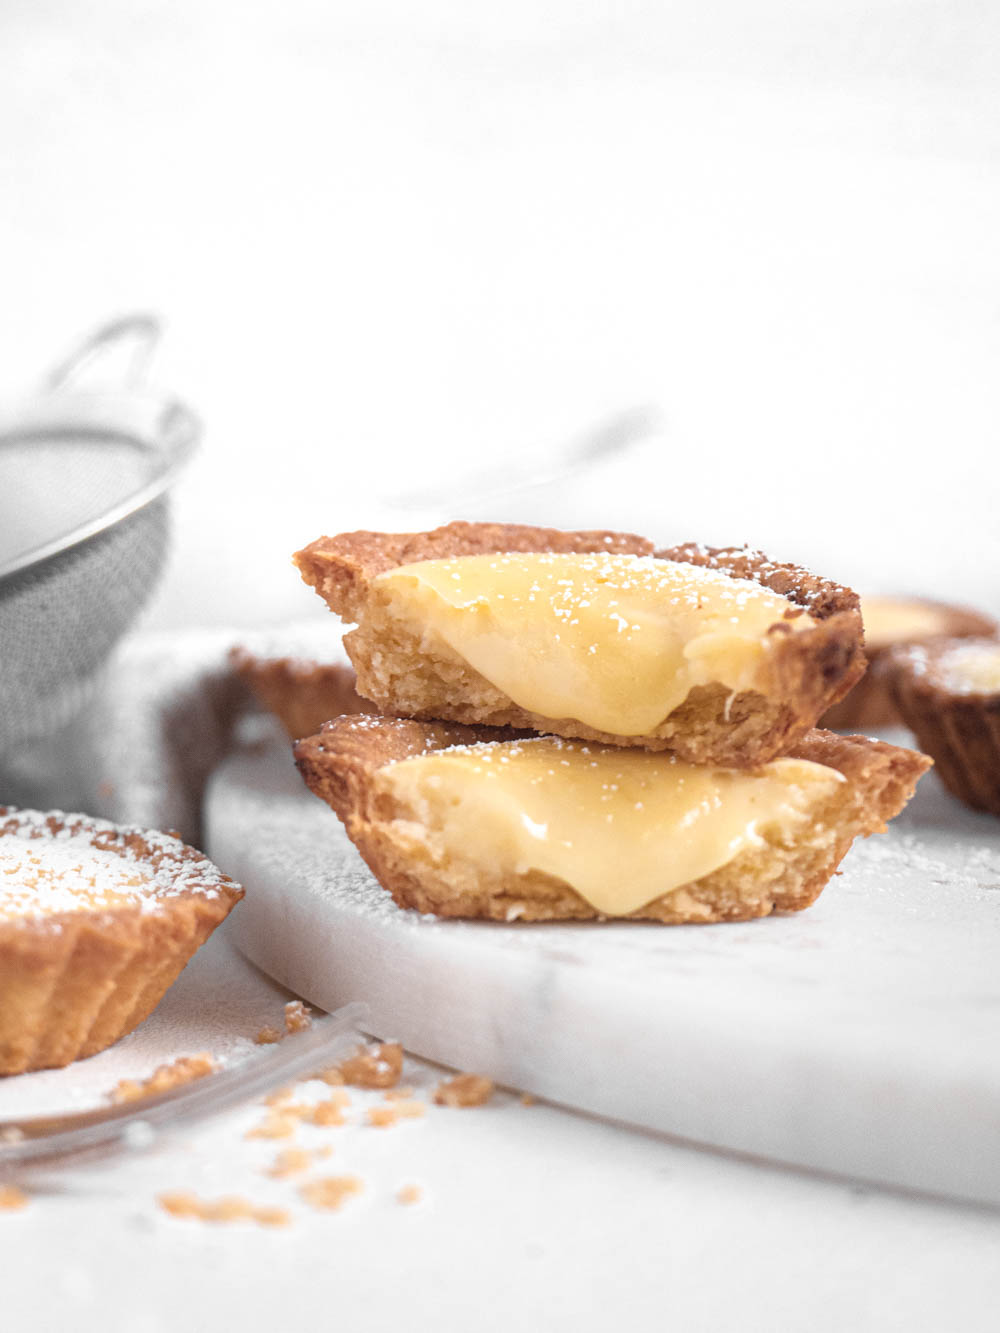 Hokkaido Baked Molten Cheese Tarts with Buttery and Flakey Pastry